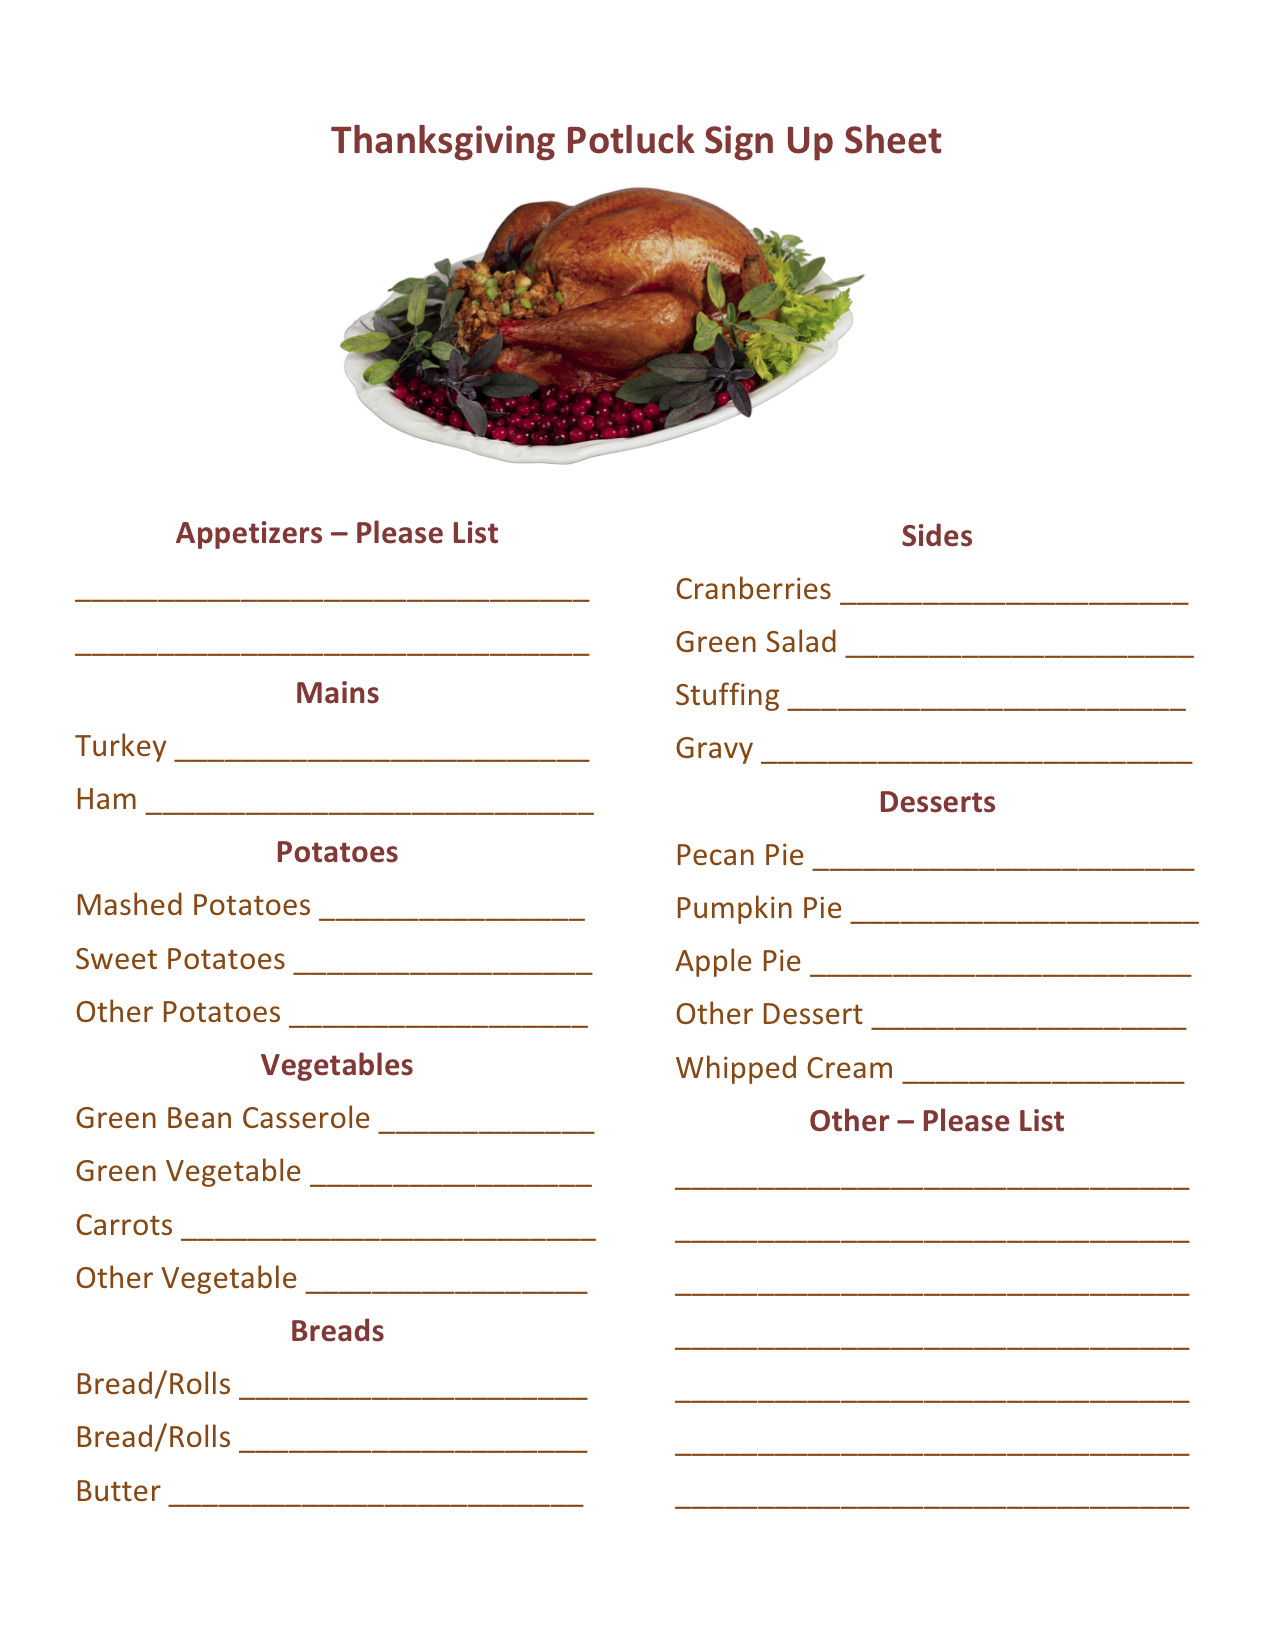 Christmas Potluck Signup Sheet Template Thanksgiving Potluck Sign Up Printable